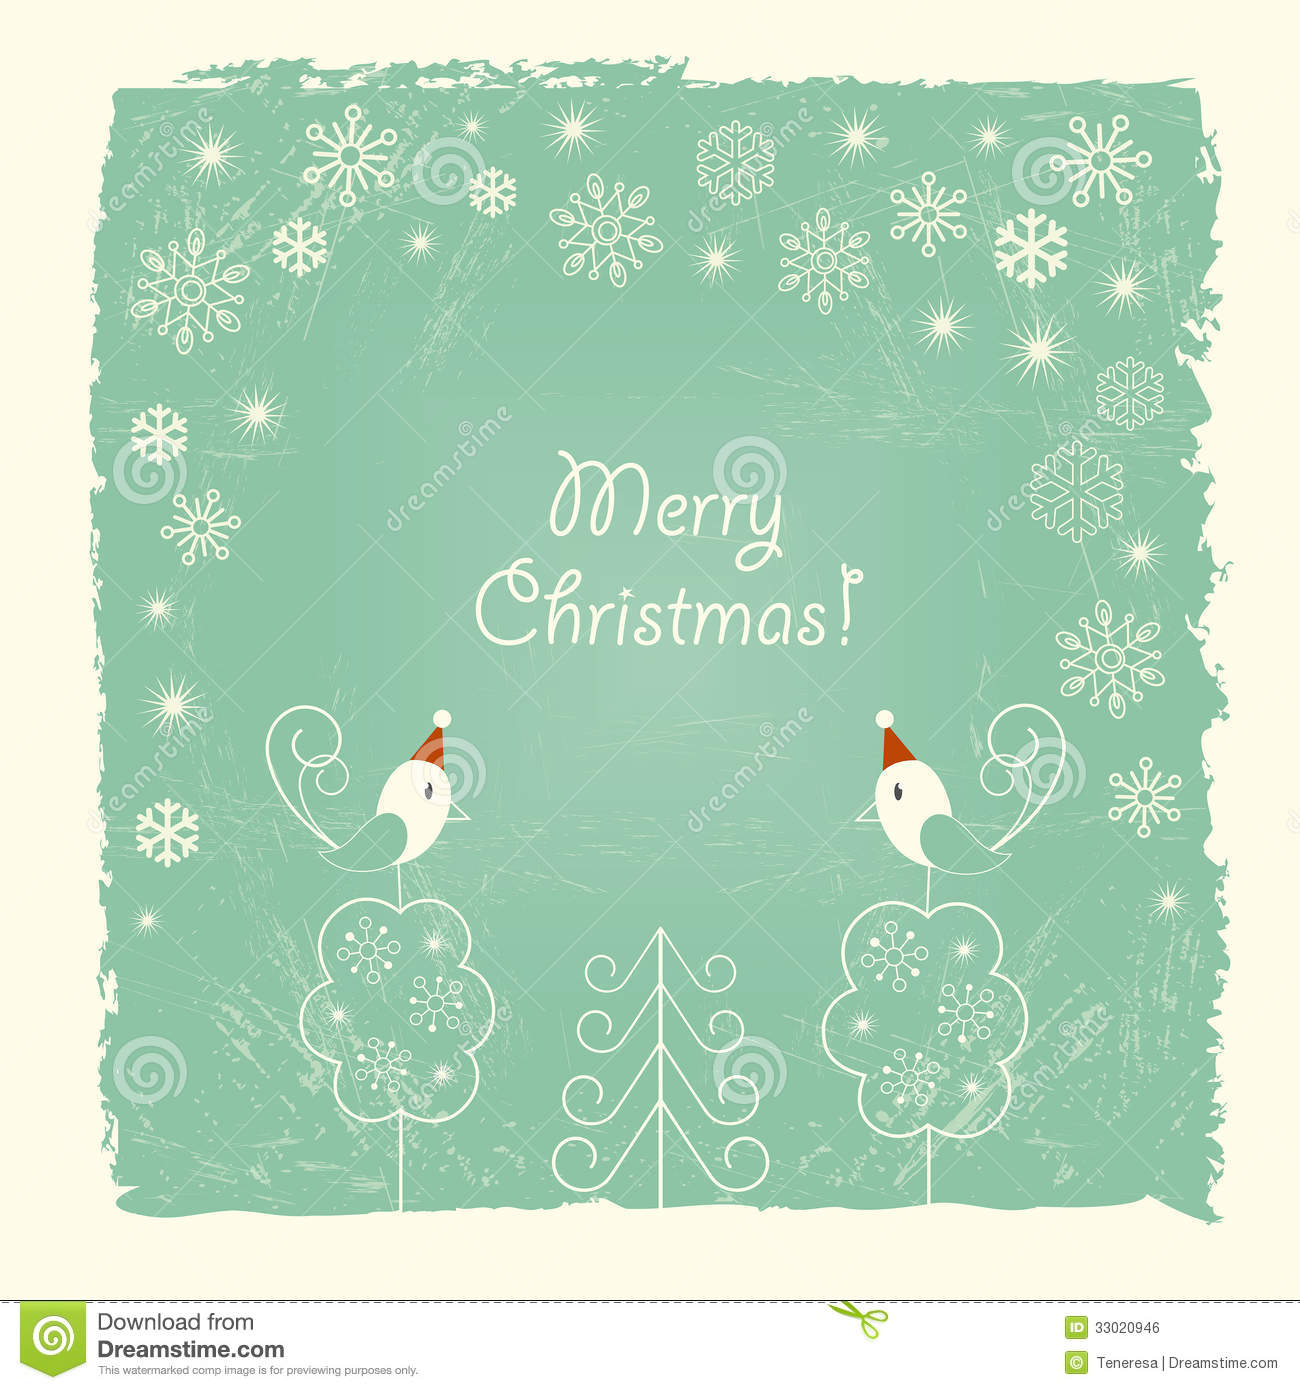 Retro Christmas Card With Snowflakes And Birds Stock Vector